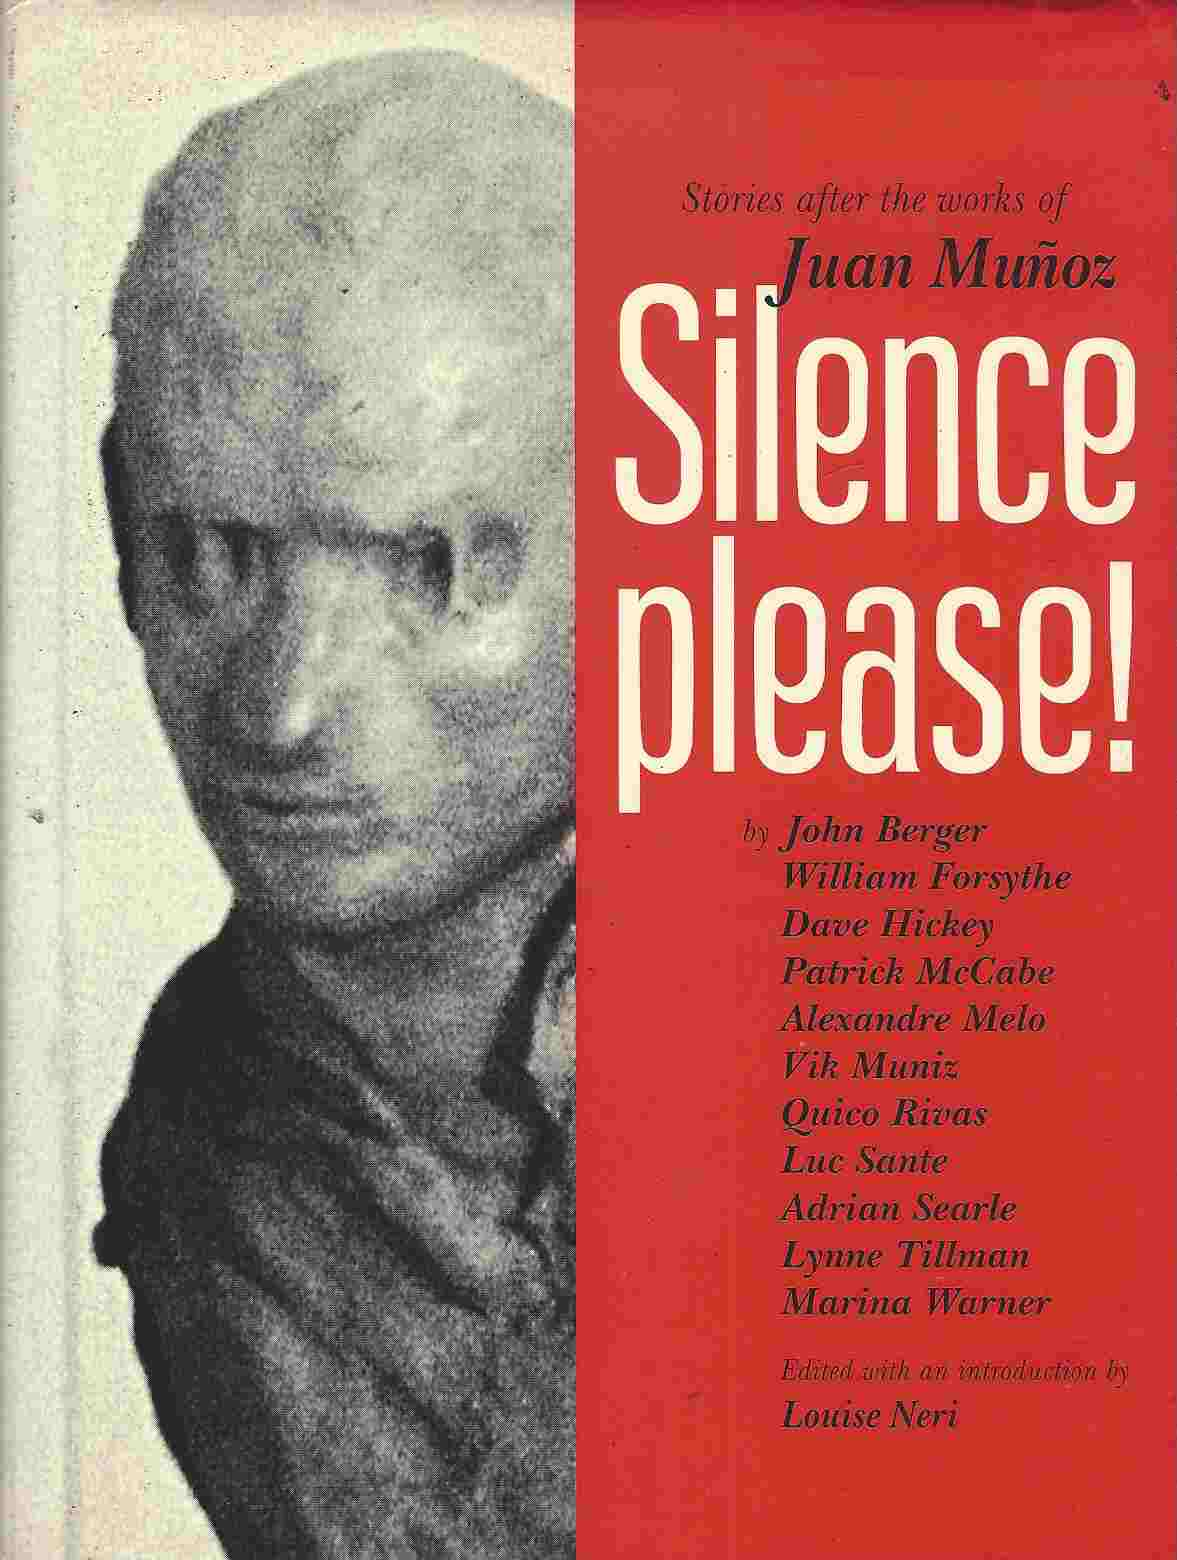 Image for Juan Munoz Silence, Please!